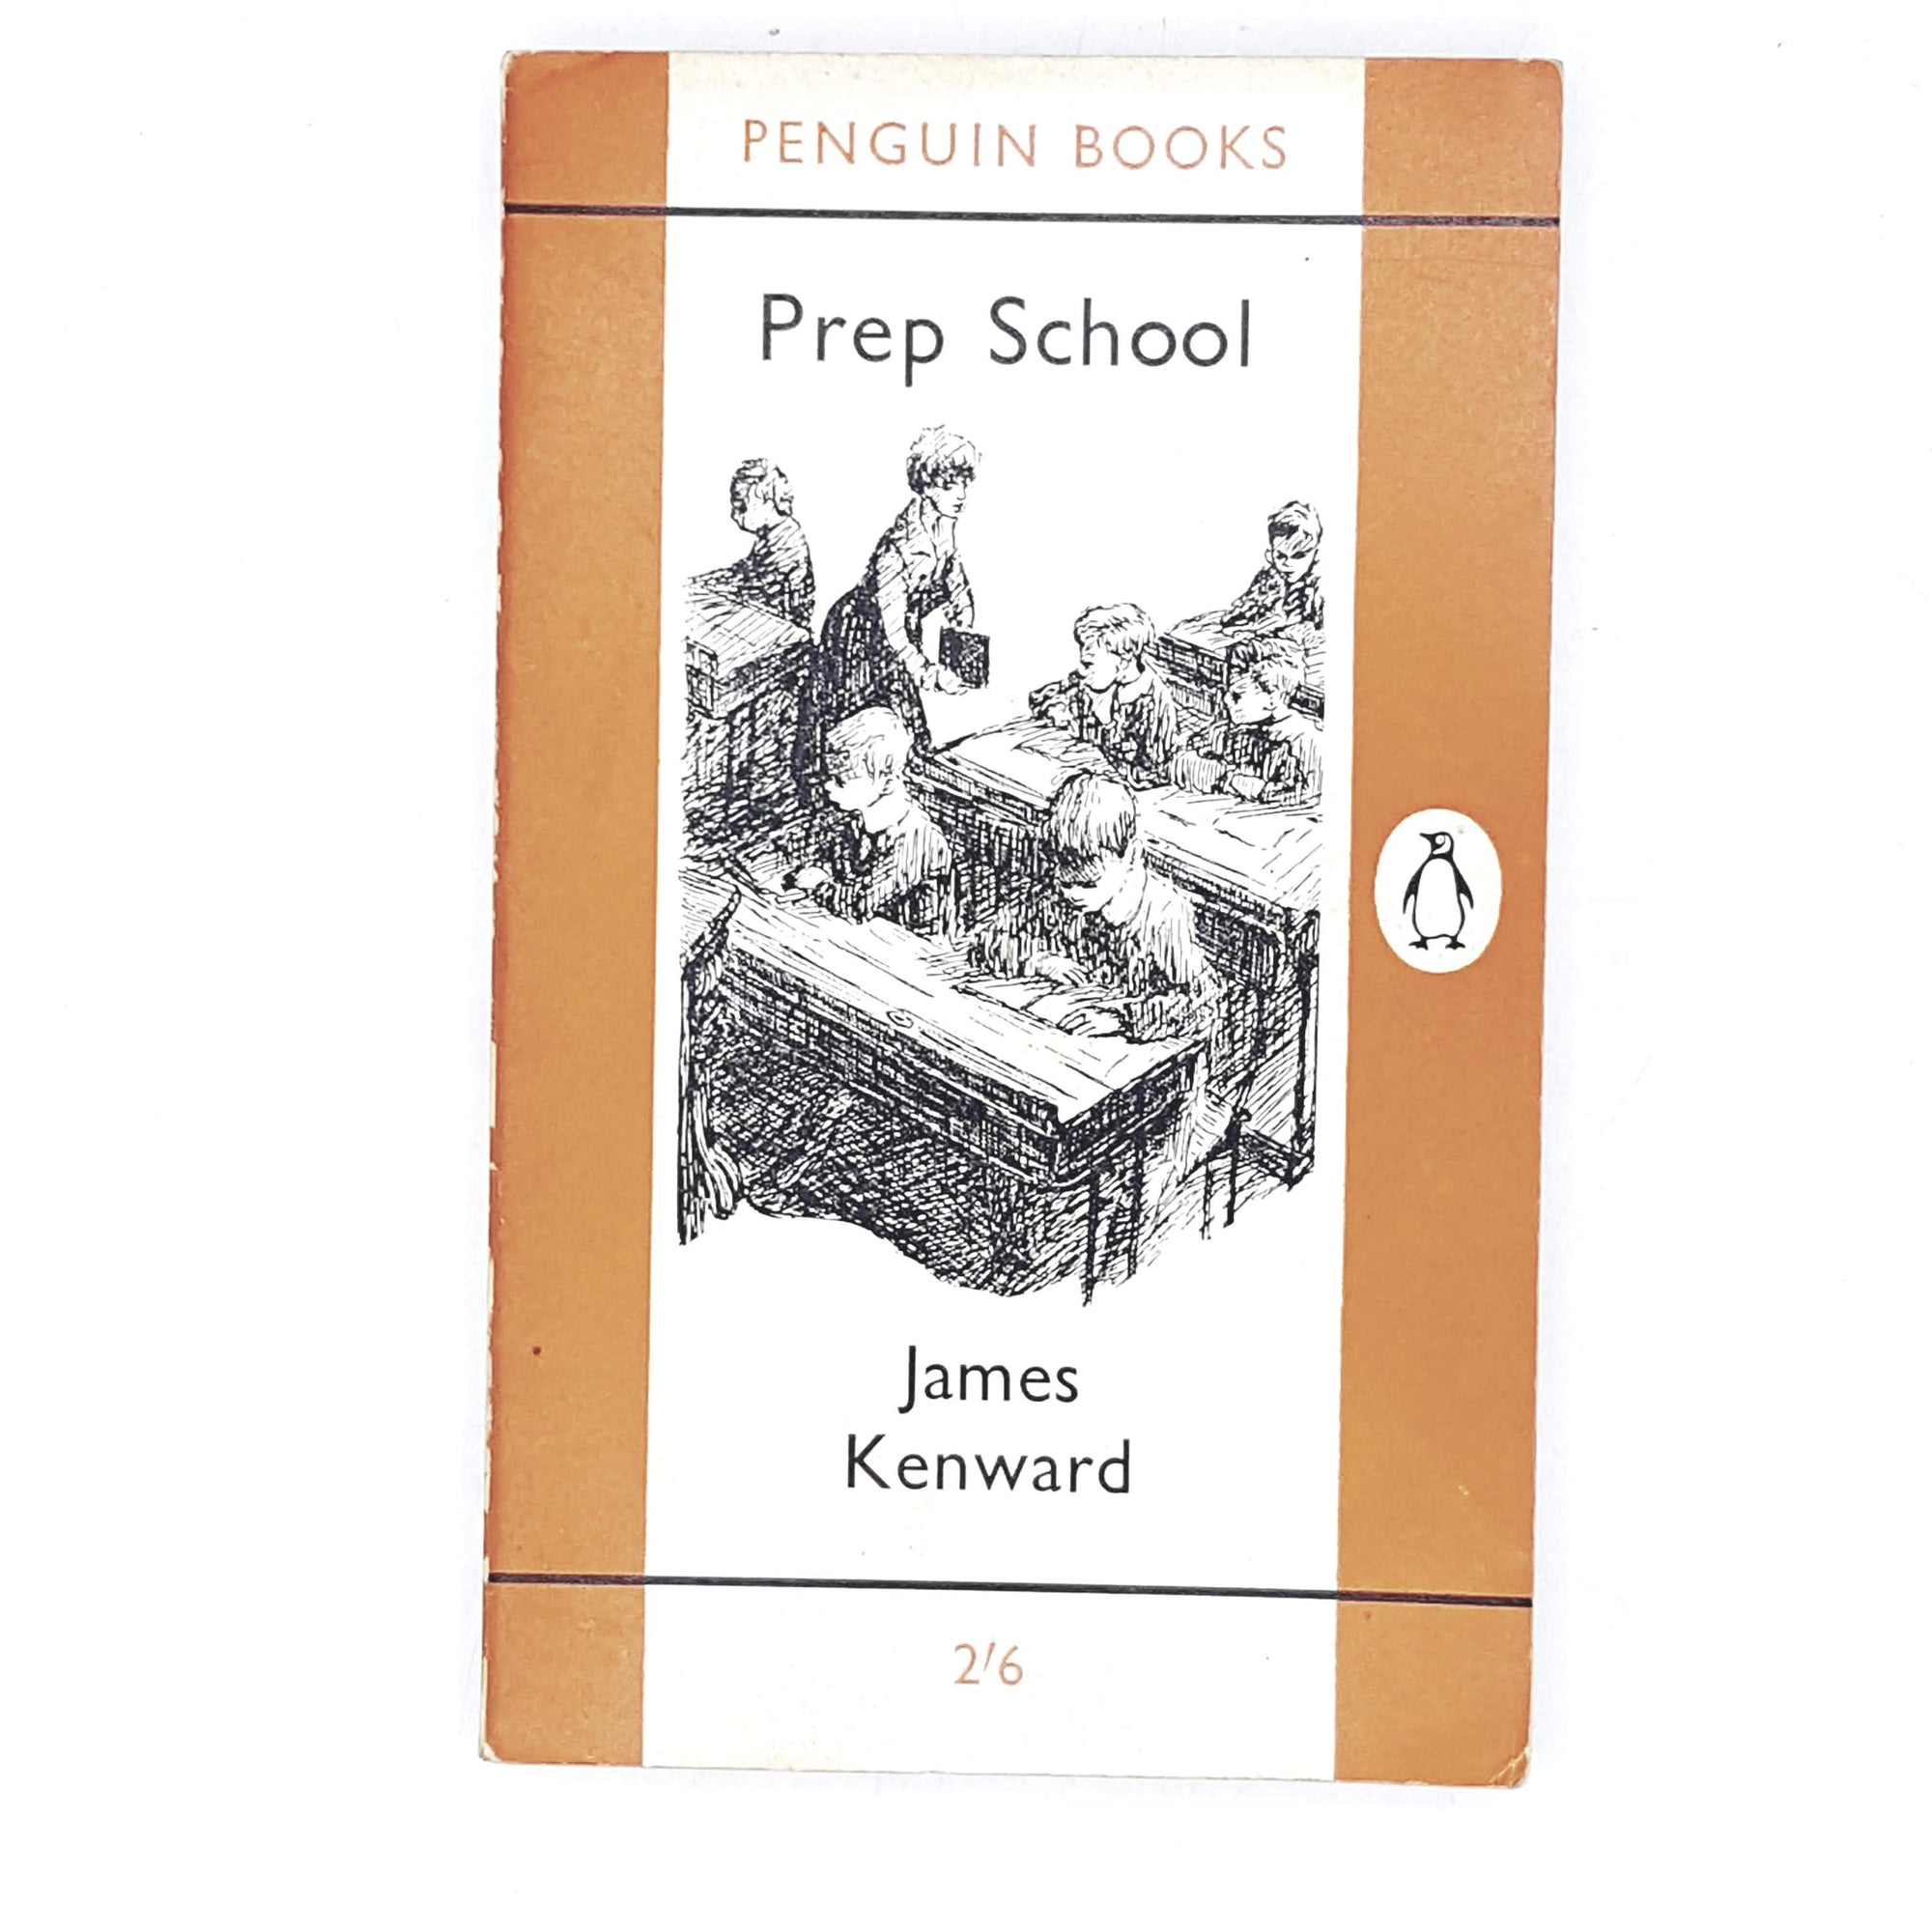 Vintage Penguin Prep School by James Kenward 1958